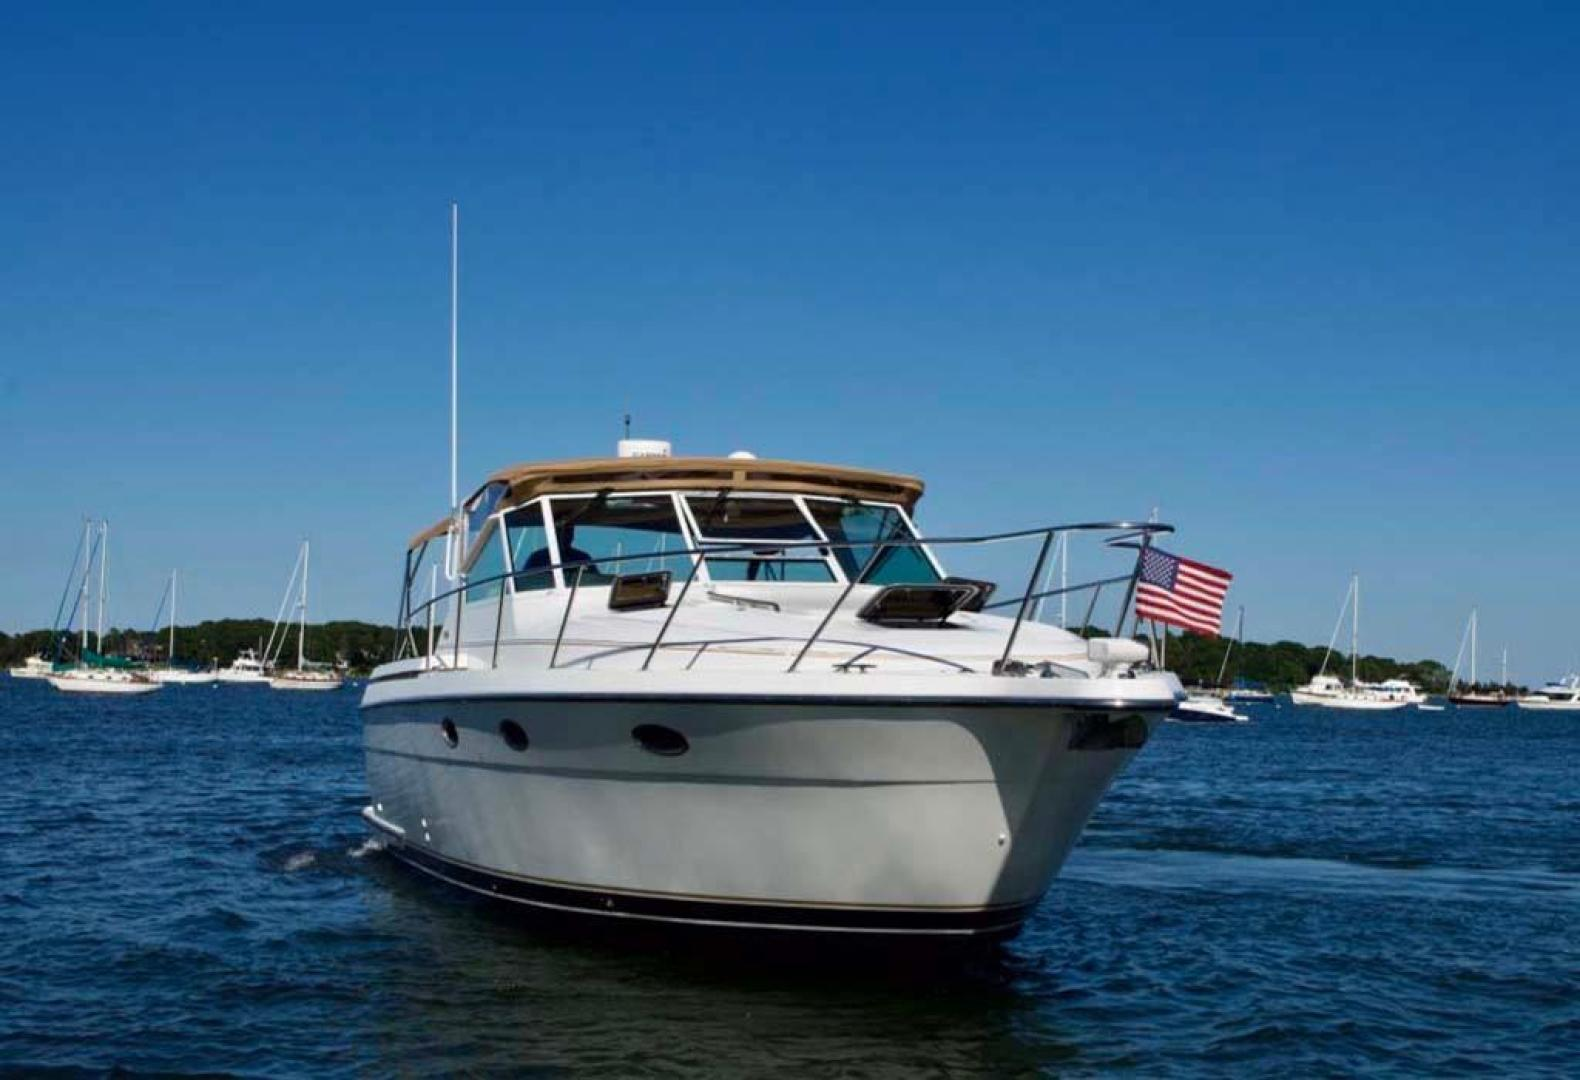 Tiara Yachts-3500 Express 2002-DEFICIT SPENDING Shelter Island, Long Island-New York-United States-Starboard-930519 | Thumbnail